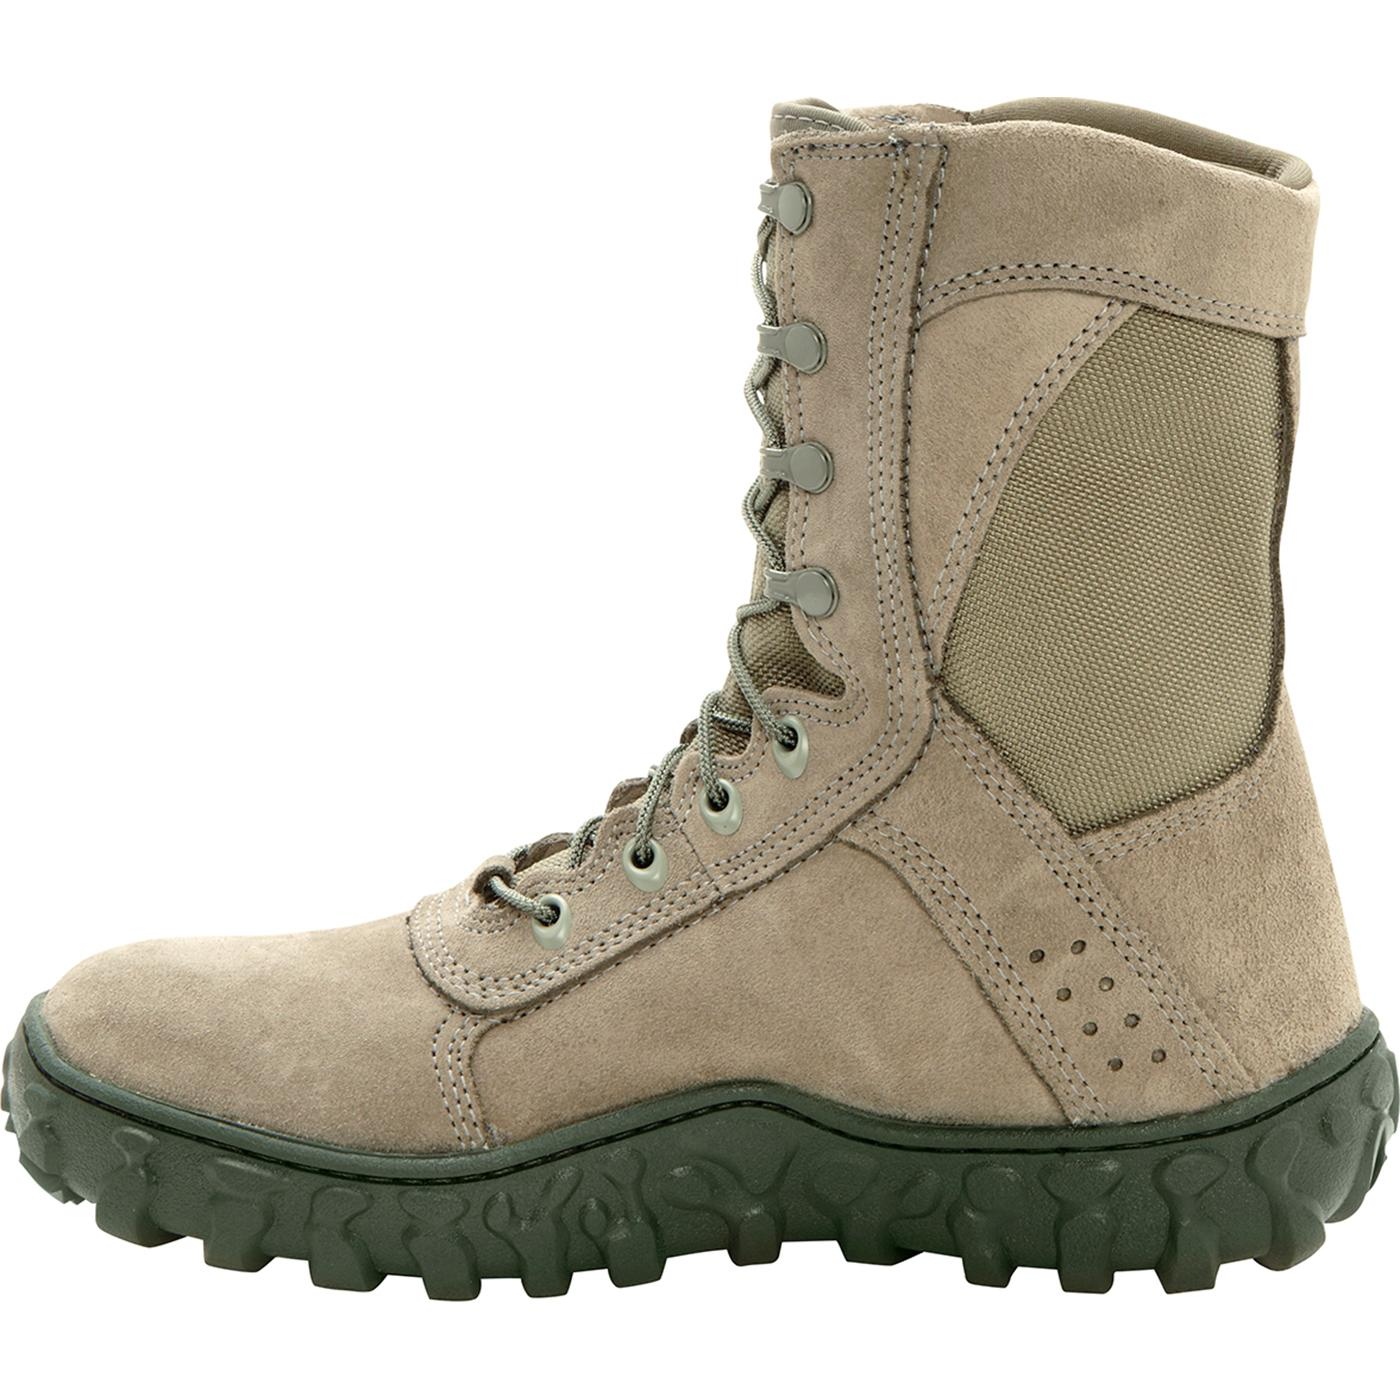 Sage Green Steel Toe Rocky S2V Military Boot 608800c8ab97